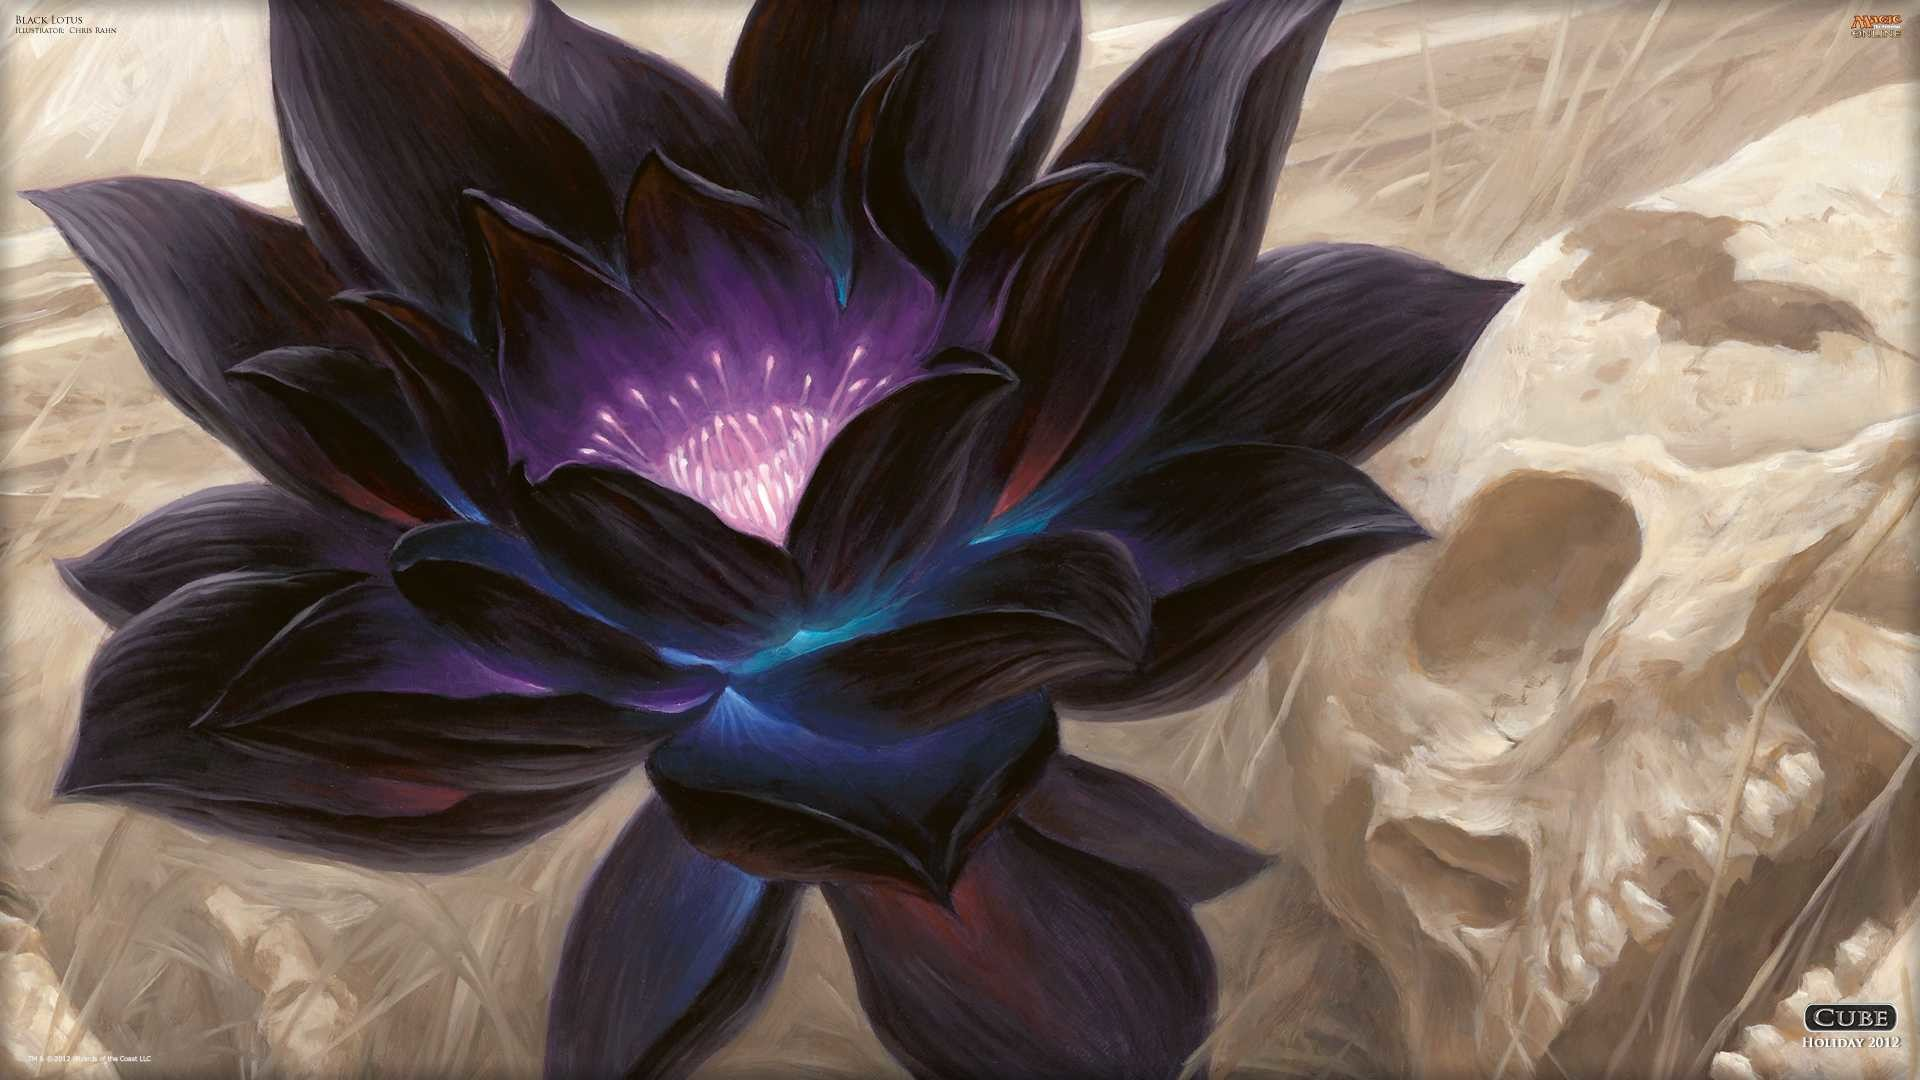 Res: 1920x1080, Magic The Gathering Wallpaper Hd Images Backgrounds For Iphone